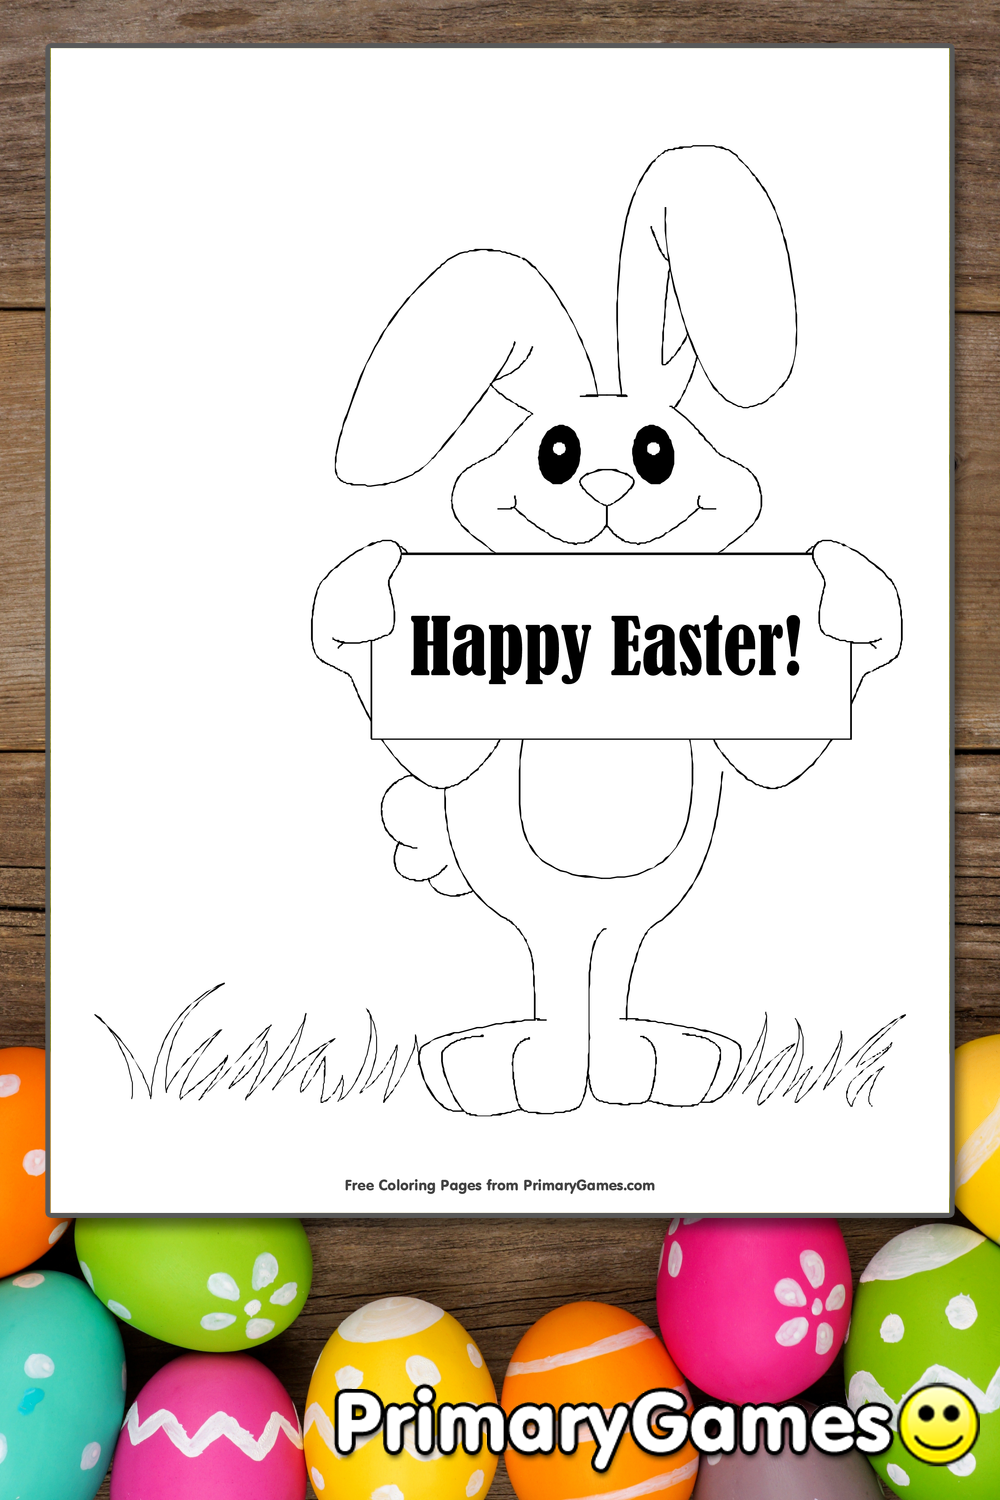 Happy Easter Bunny Coloring Page | Printable Easter ...